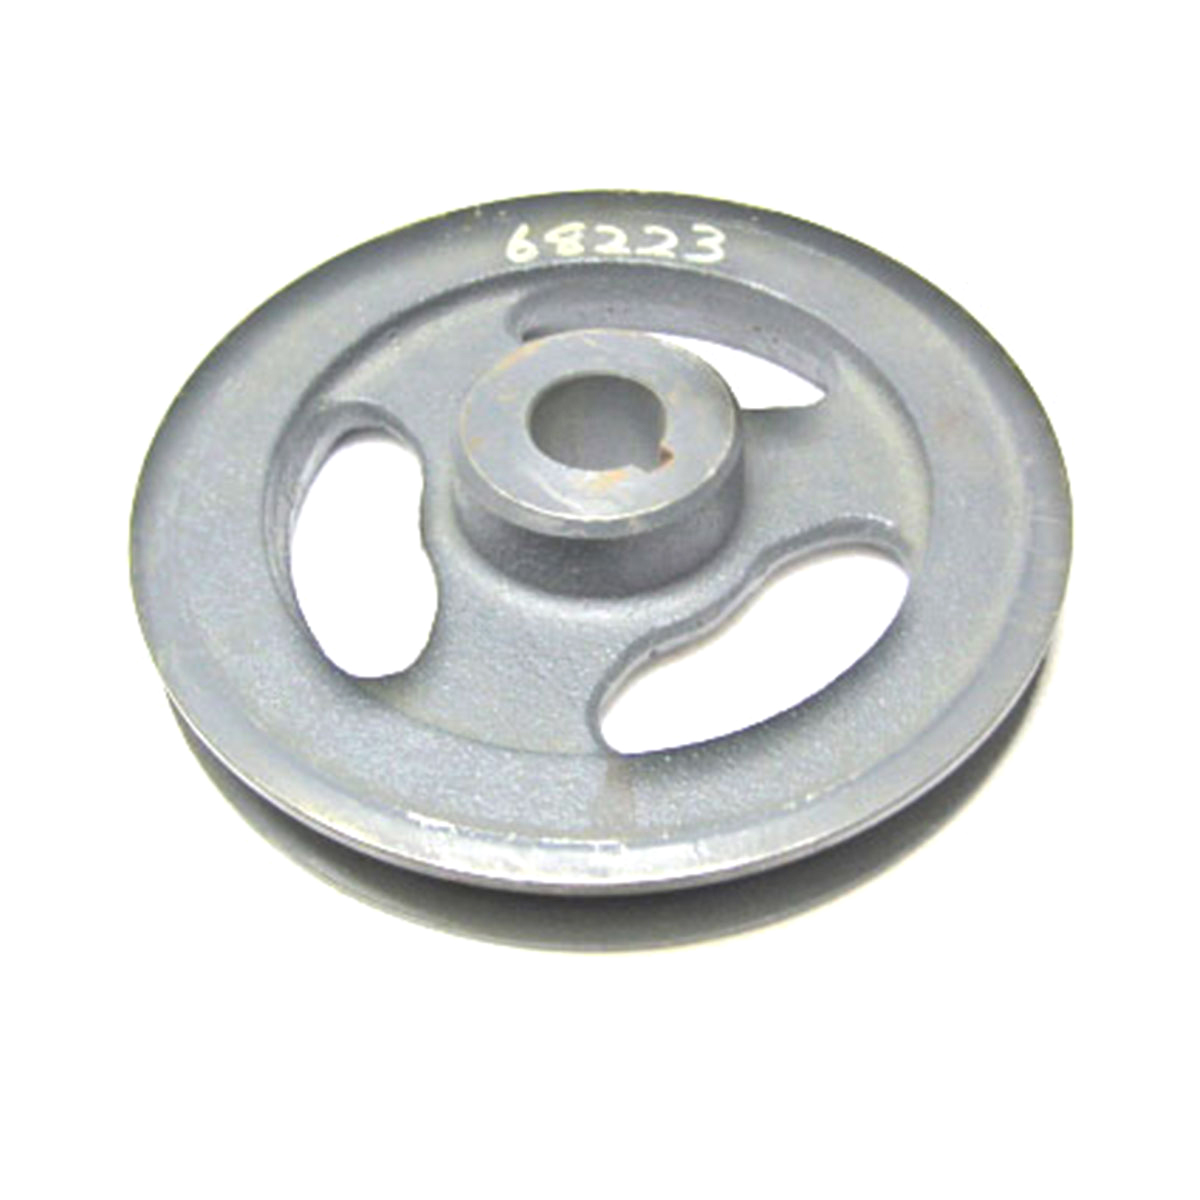 68223 Dixie Chopper Cast Pulley 7